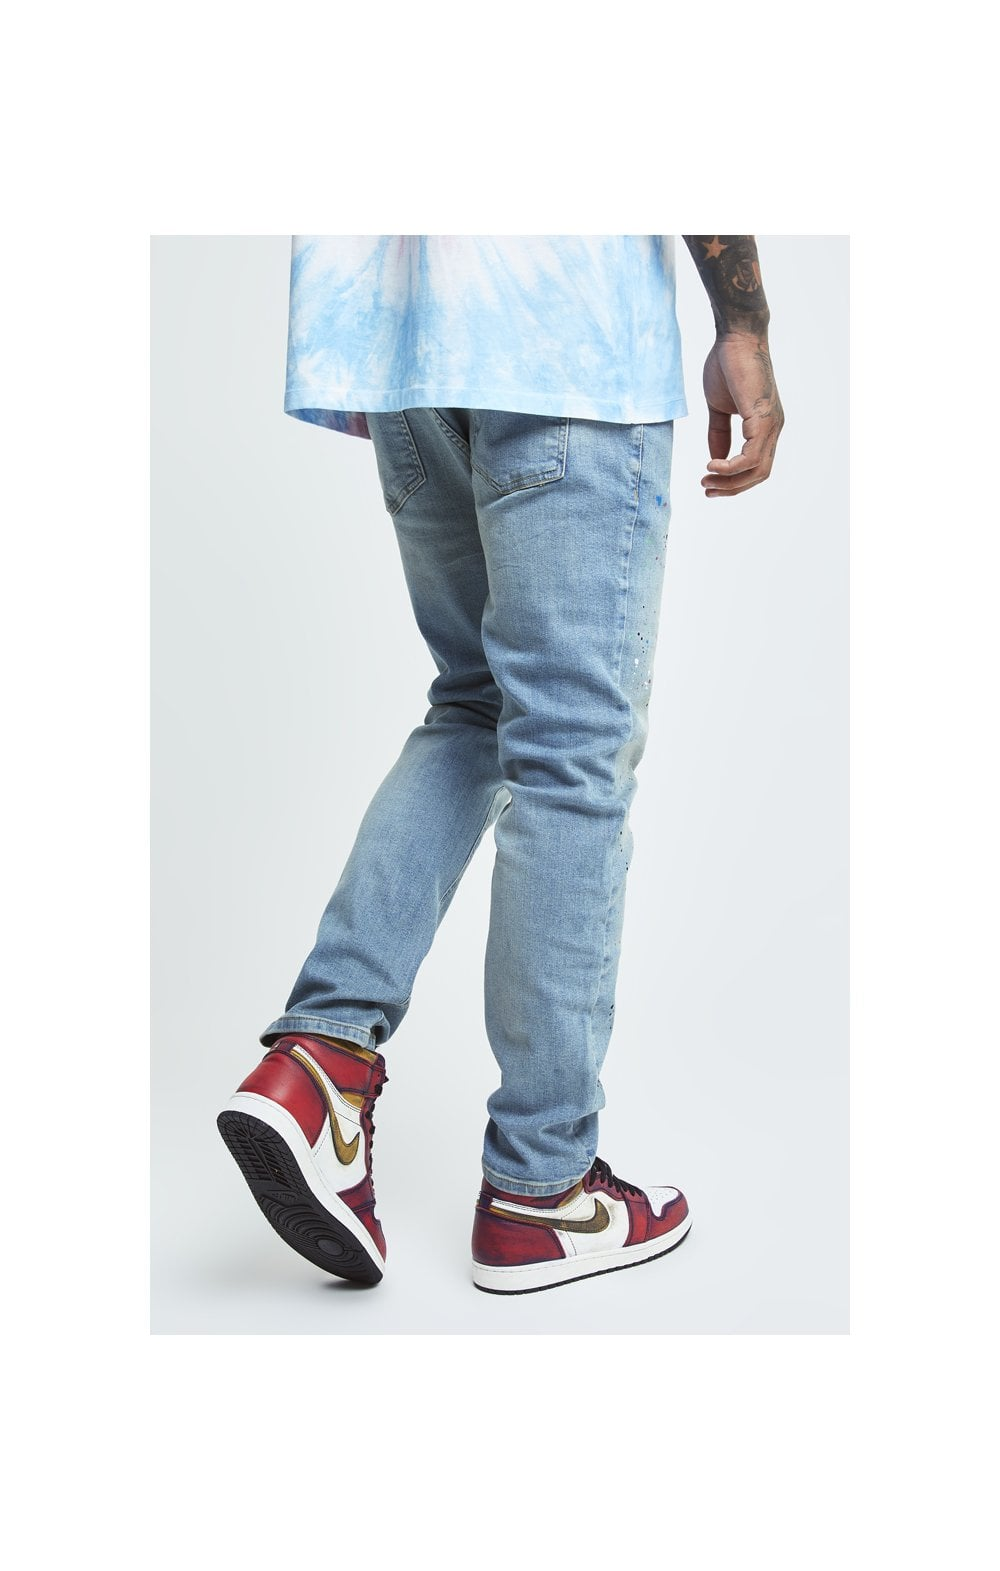 Load image into Gallery viewer, SikSilk X Steve Aoki Loose Fit Riot Denims - Light Wash (1)